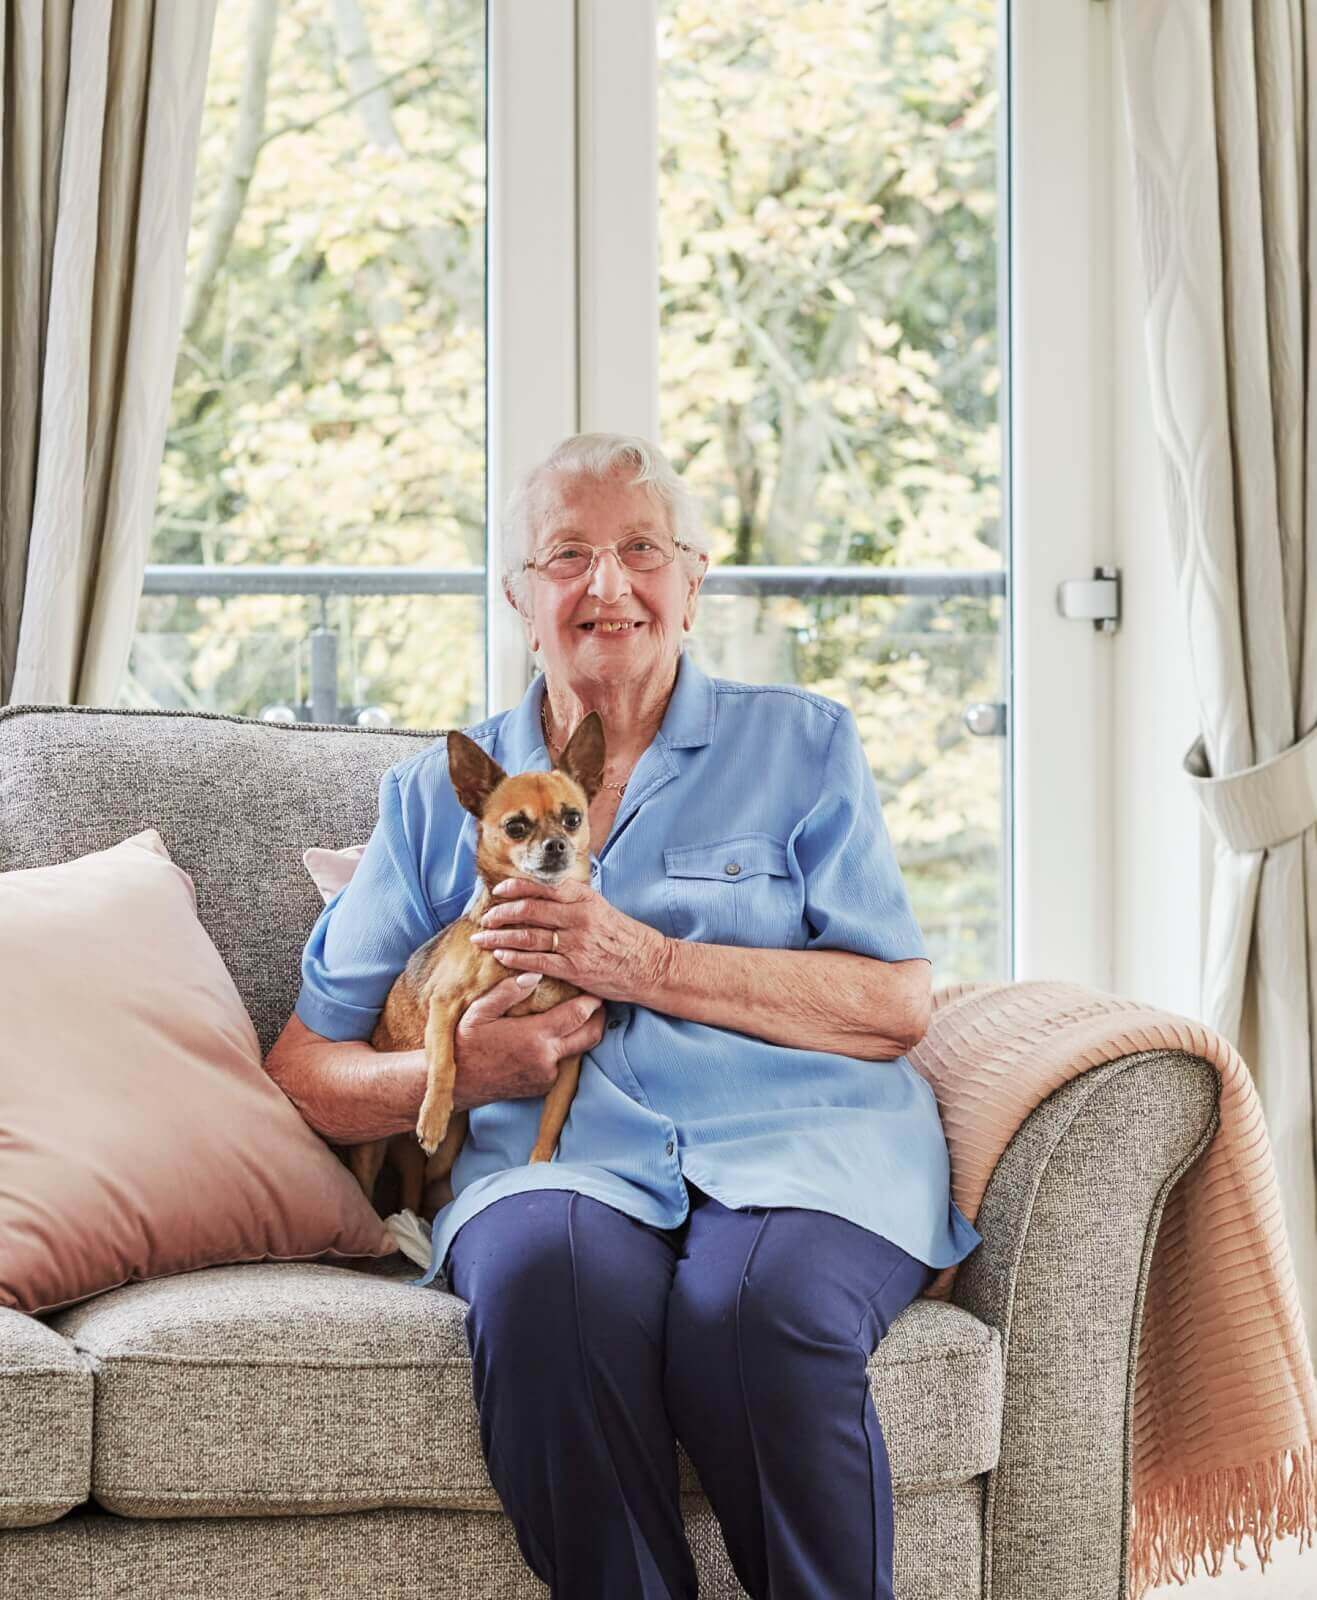 Pet friendly retirement community UK